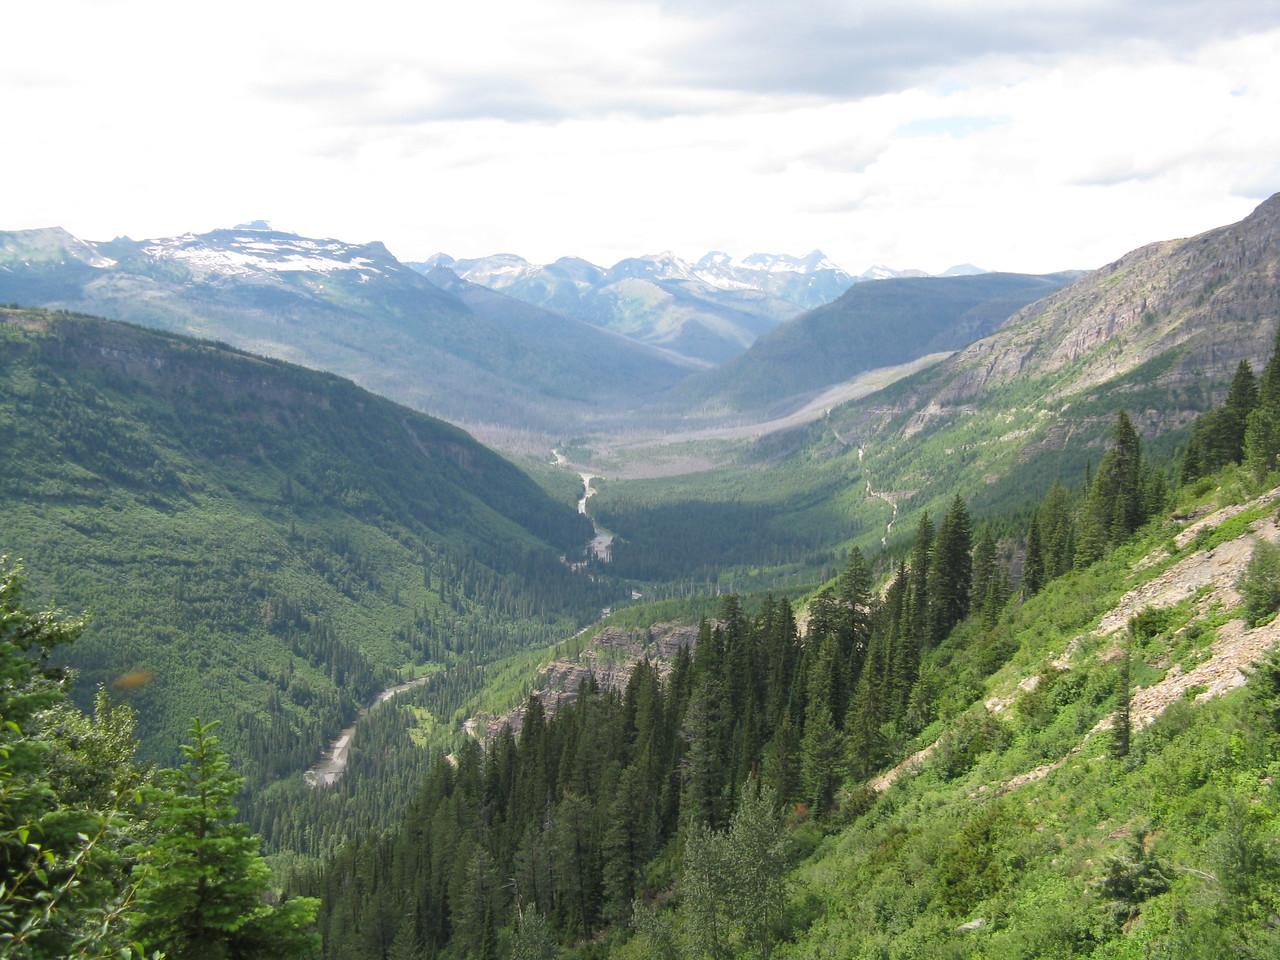 A wide angle view of the valley with snow on the distant mountains.